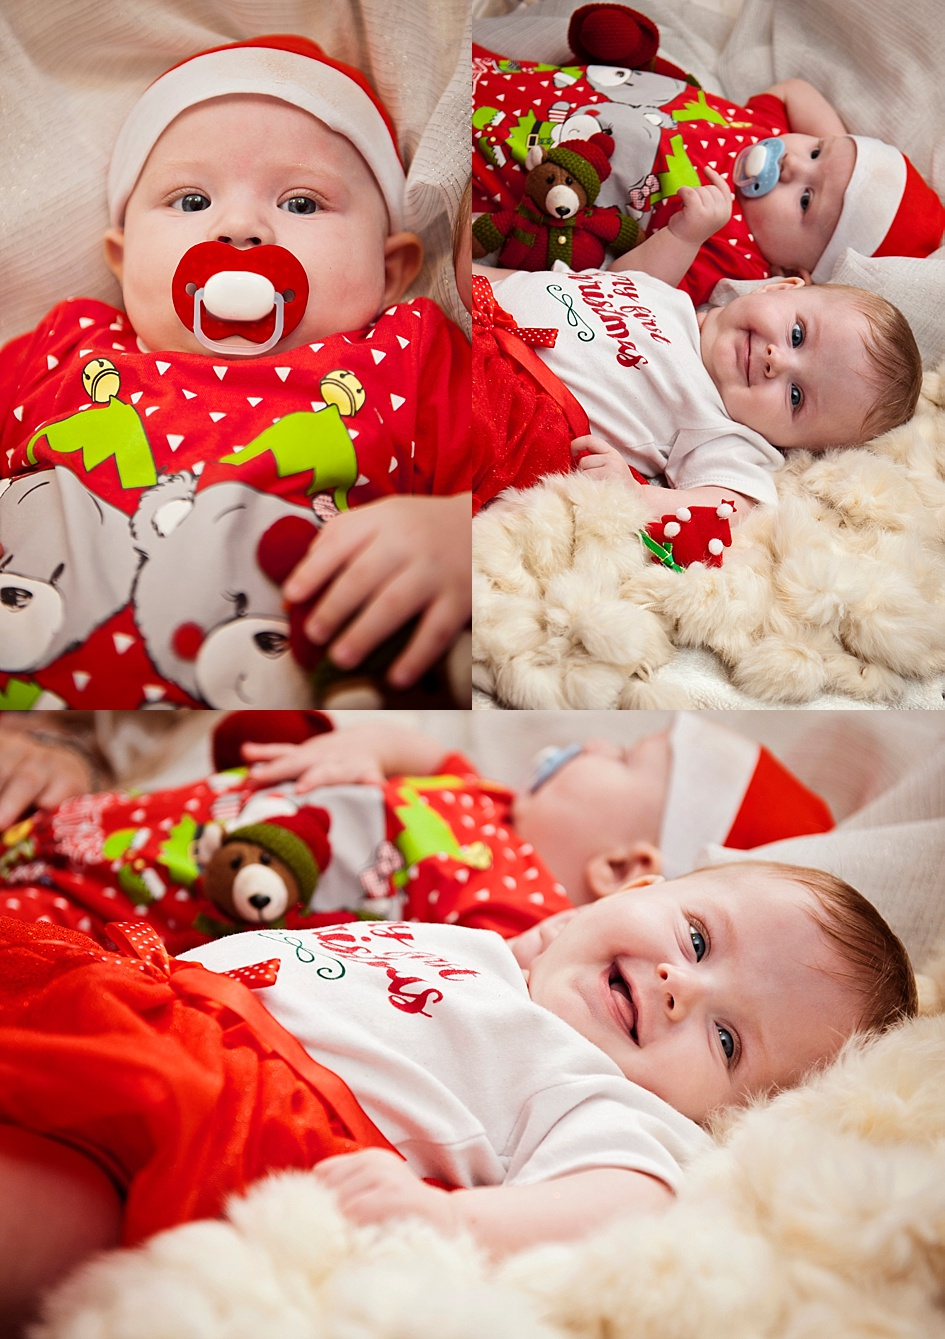 festive-baby-shoot-ideas.jpg